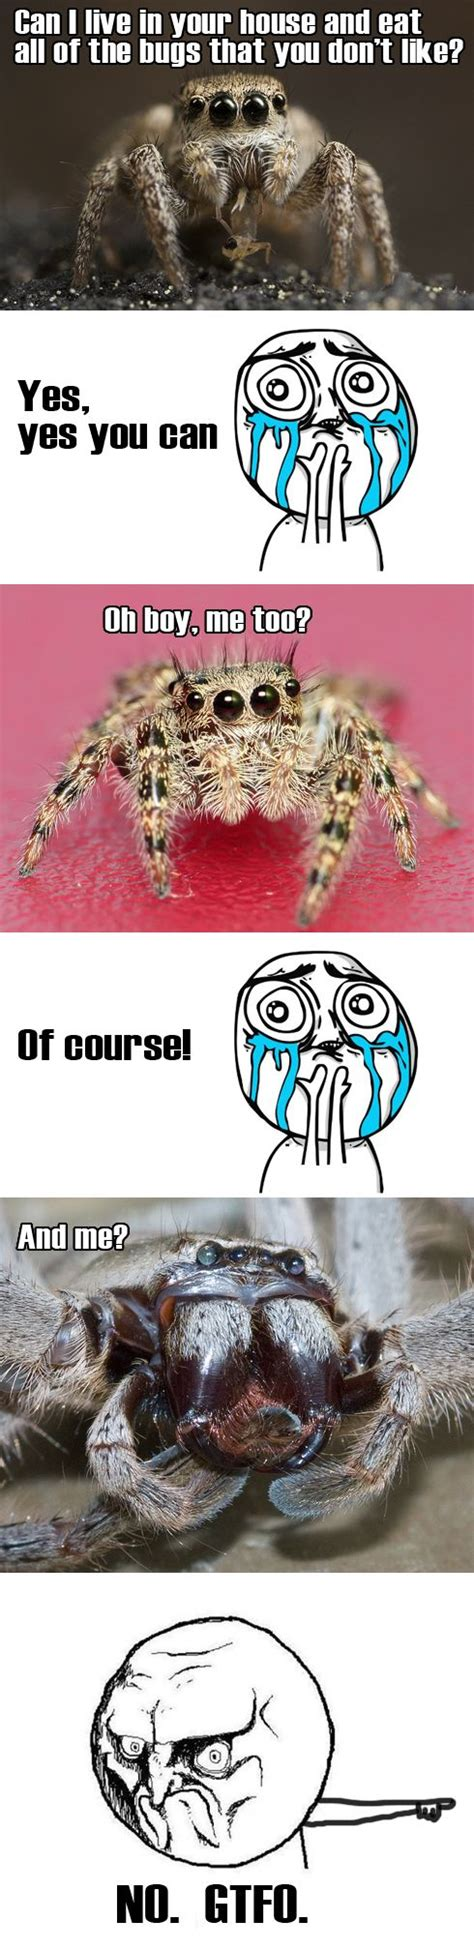 Cute Spider Meme - 52 best images about spiders on pinterest game of ants and jumping spider